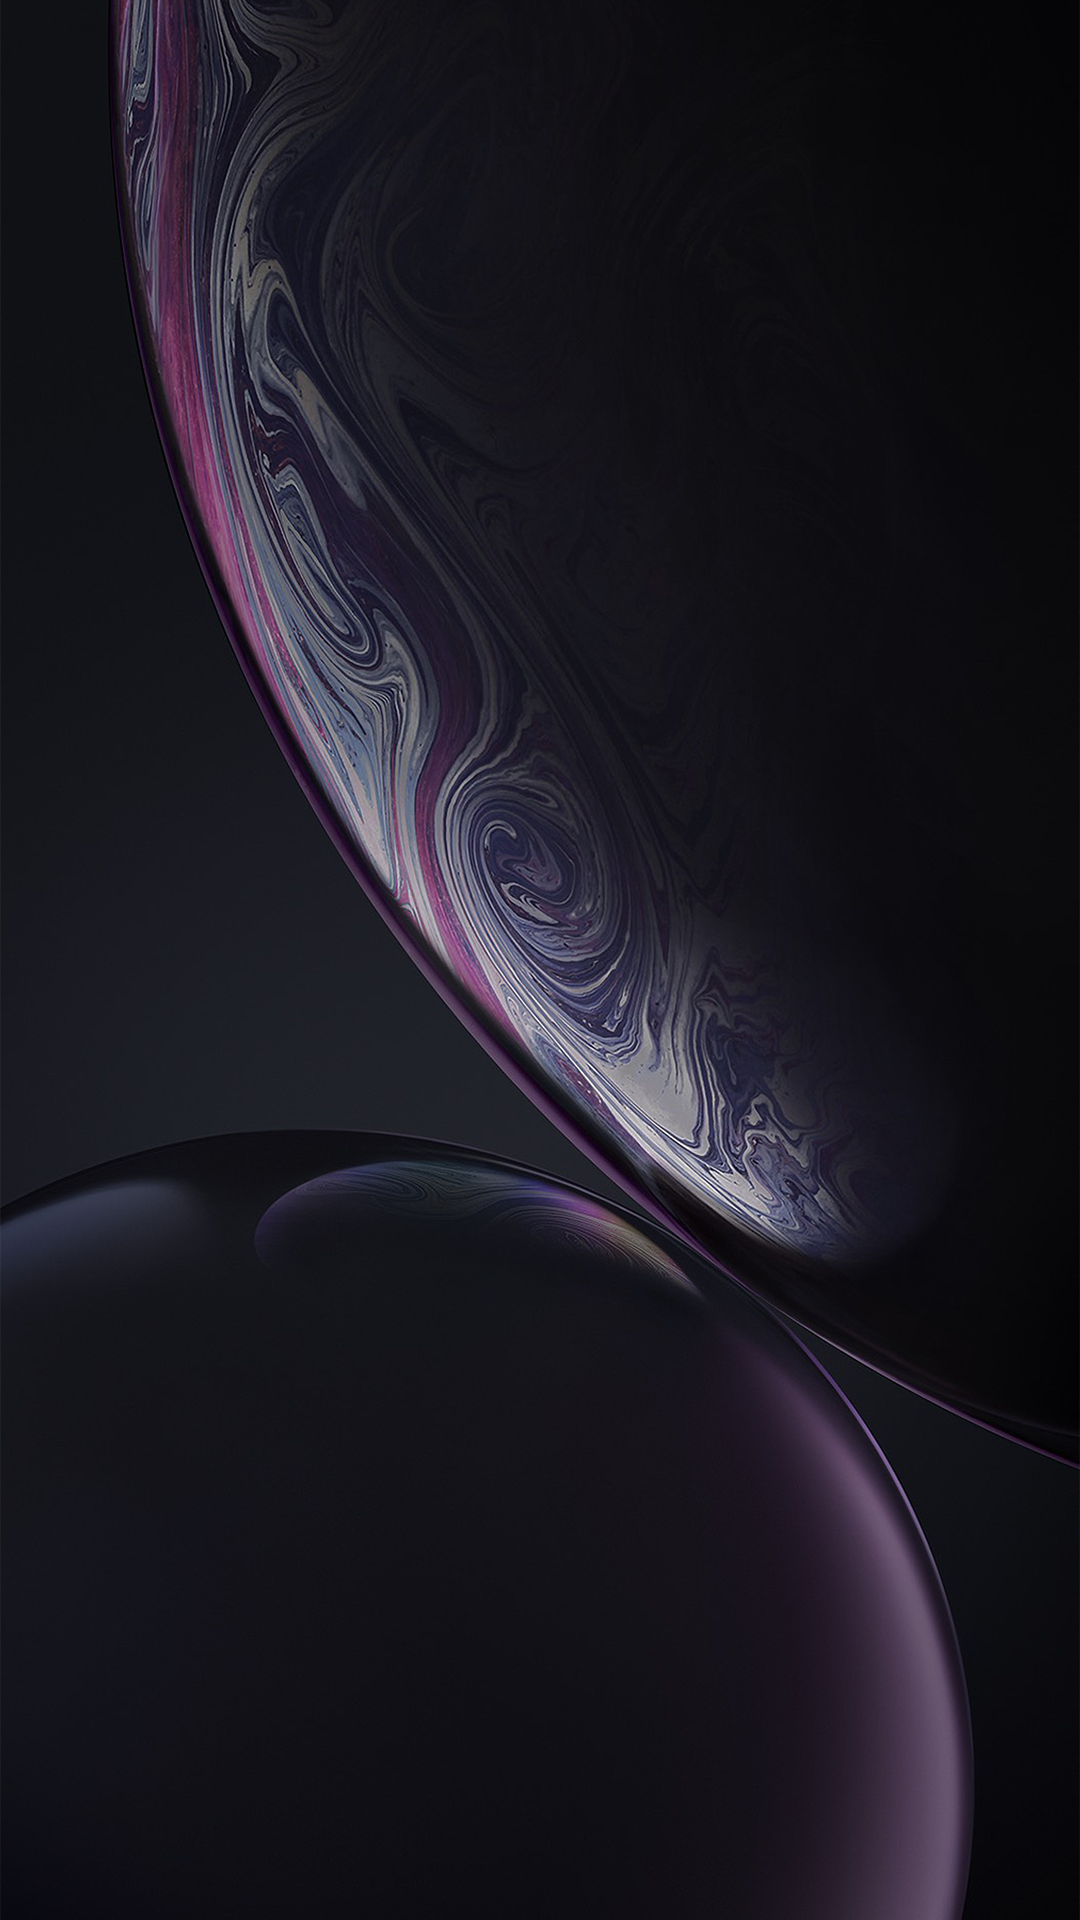 Download Wallpapers Iphone Xs Iphone Xs Max And Iphone Xr 1080x1920